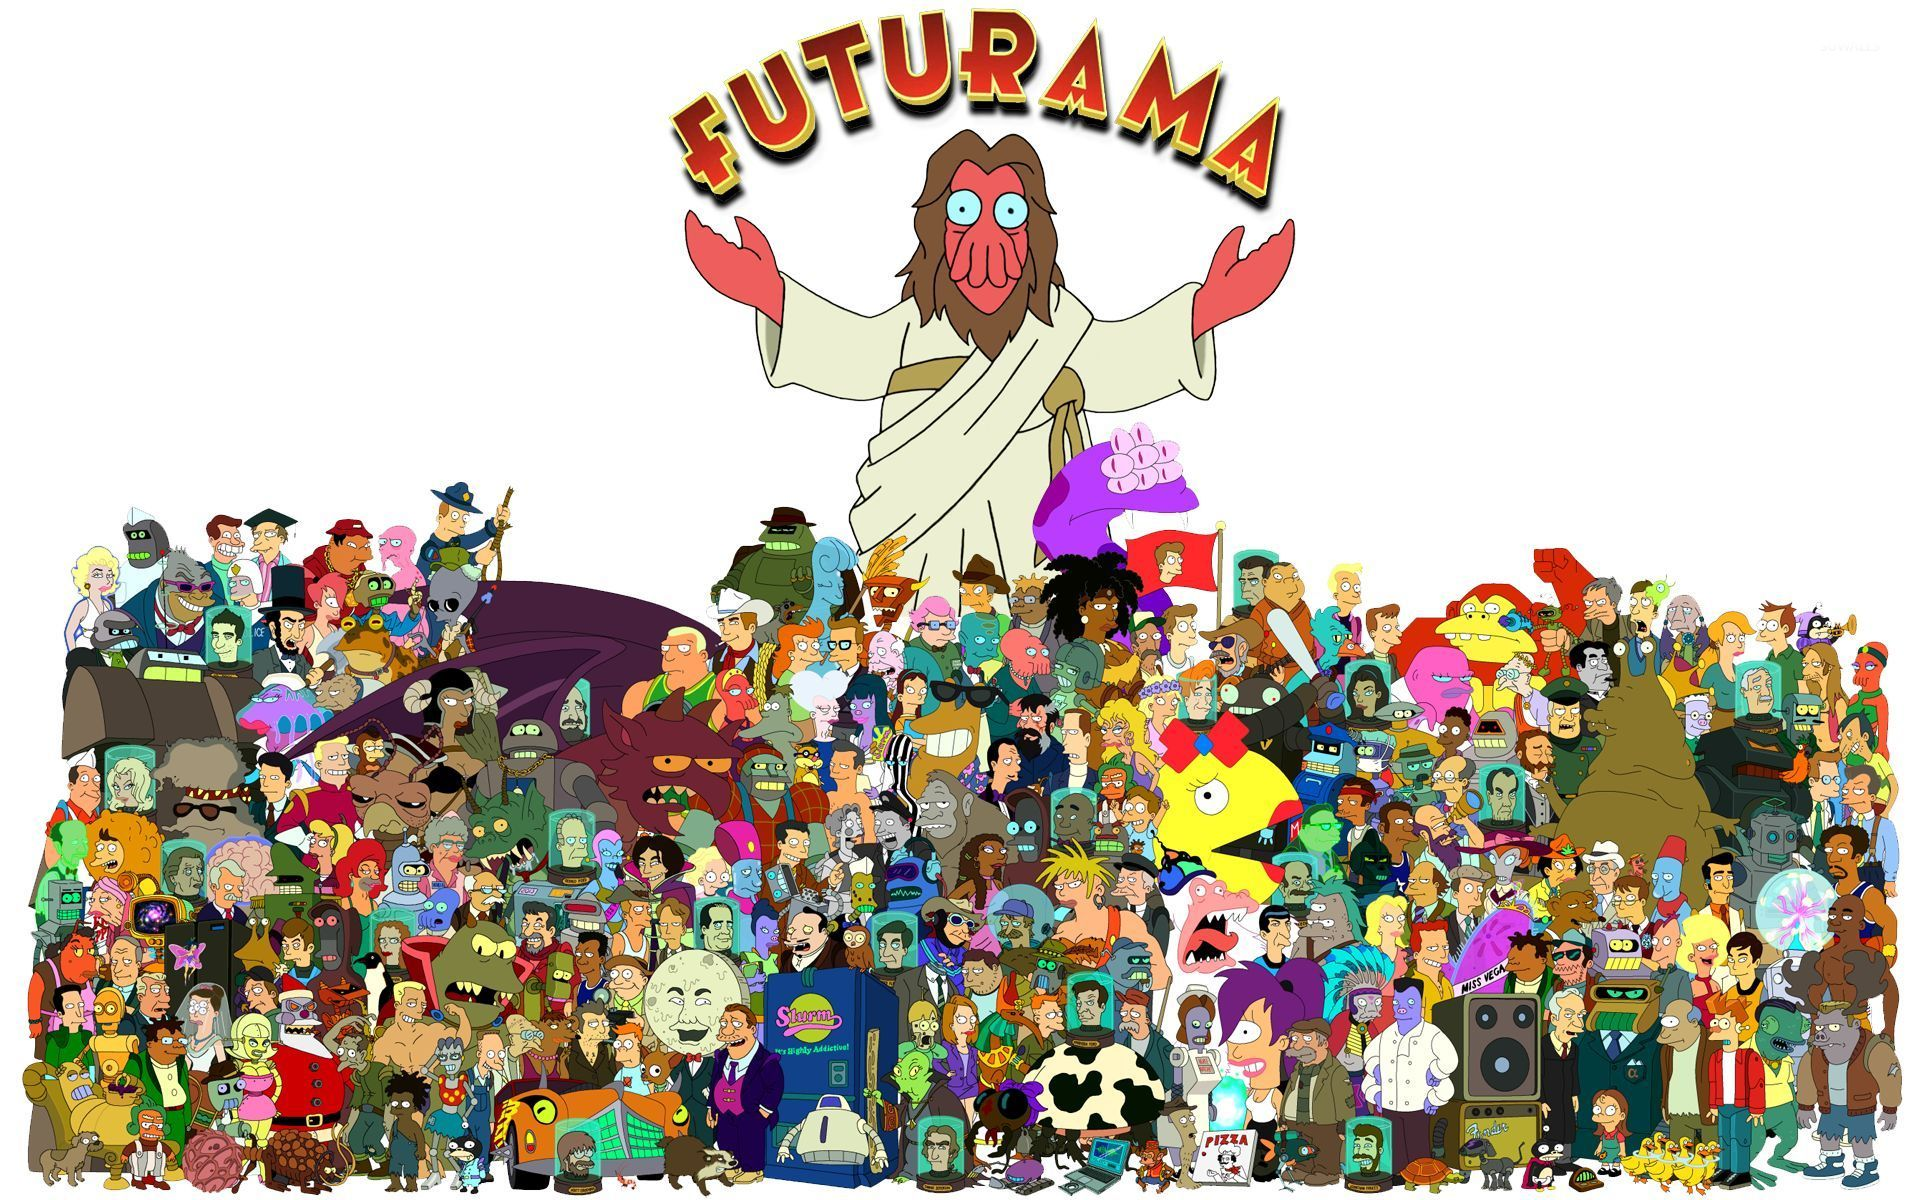 Futurama 9979 as well Futurama 5241 together with 11504 Artwork Death Reaper Scythe as well Funny Screensavers And Wallpaper Backgrounds additionally Funny Simpsons Wallpapers. on simpsons wallpapers for desktop